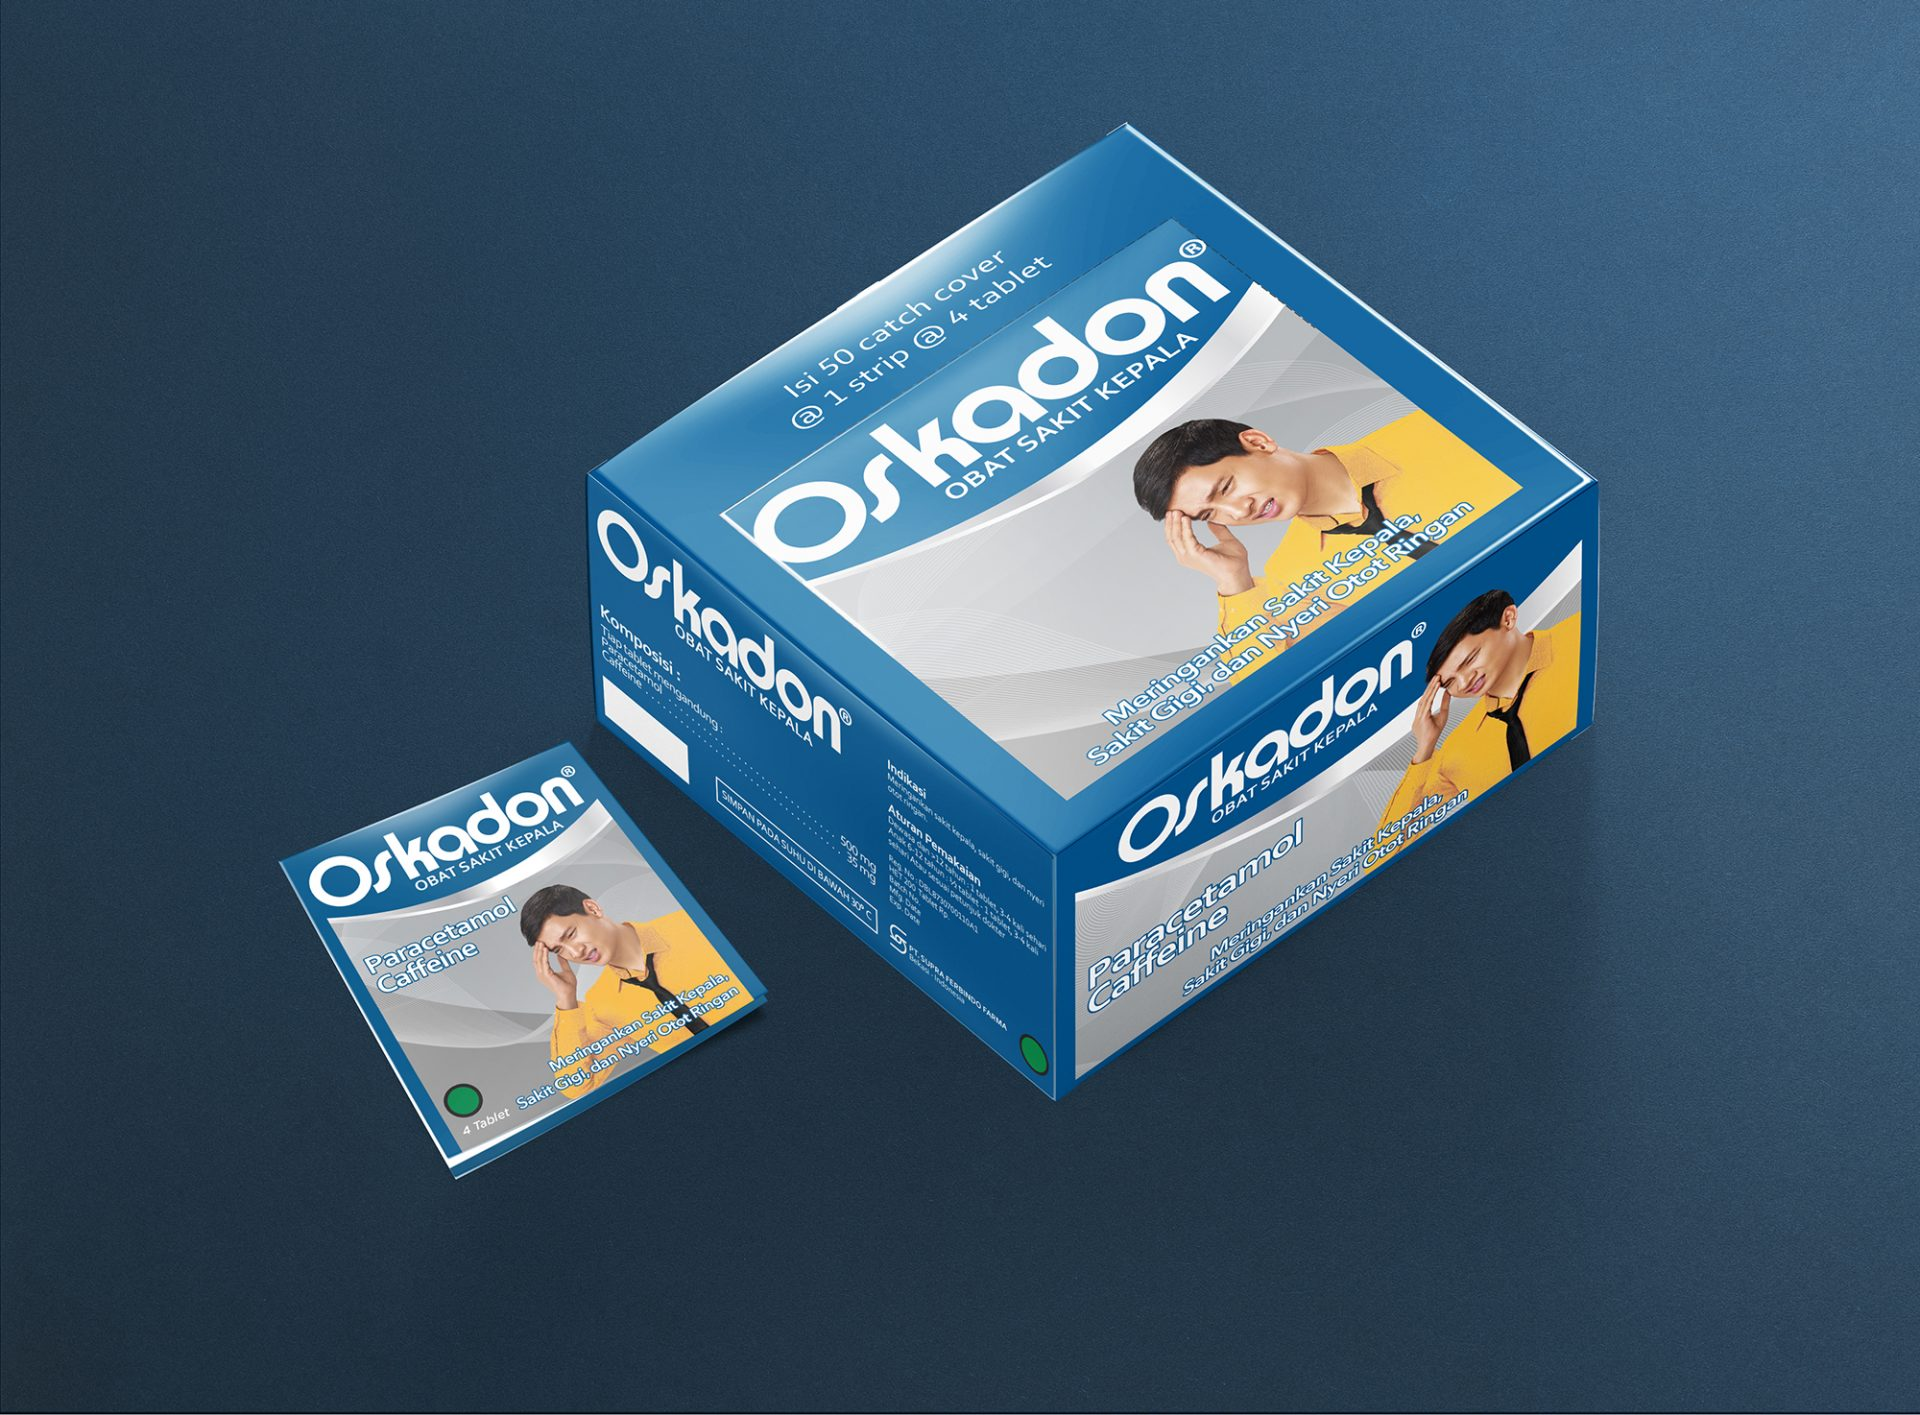 Oskadon Packaging Rejuvenation